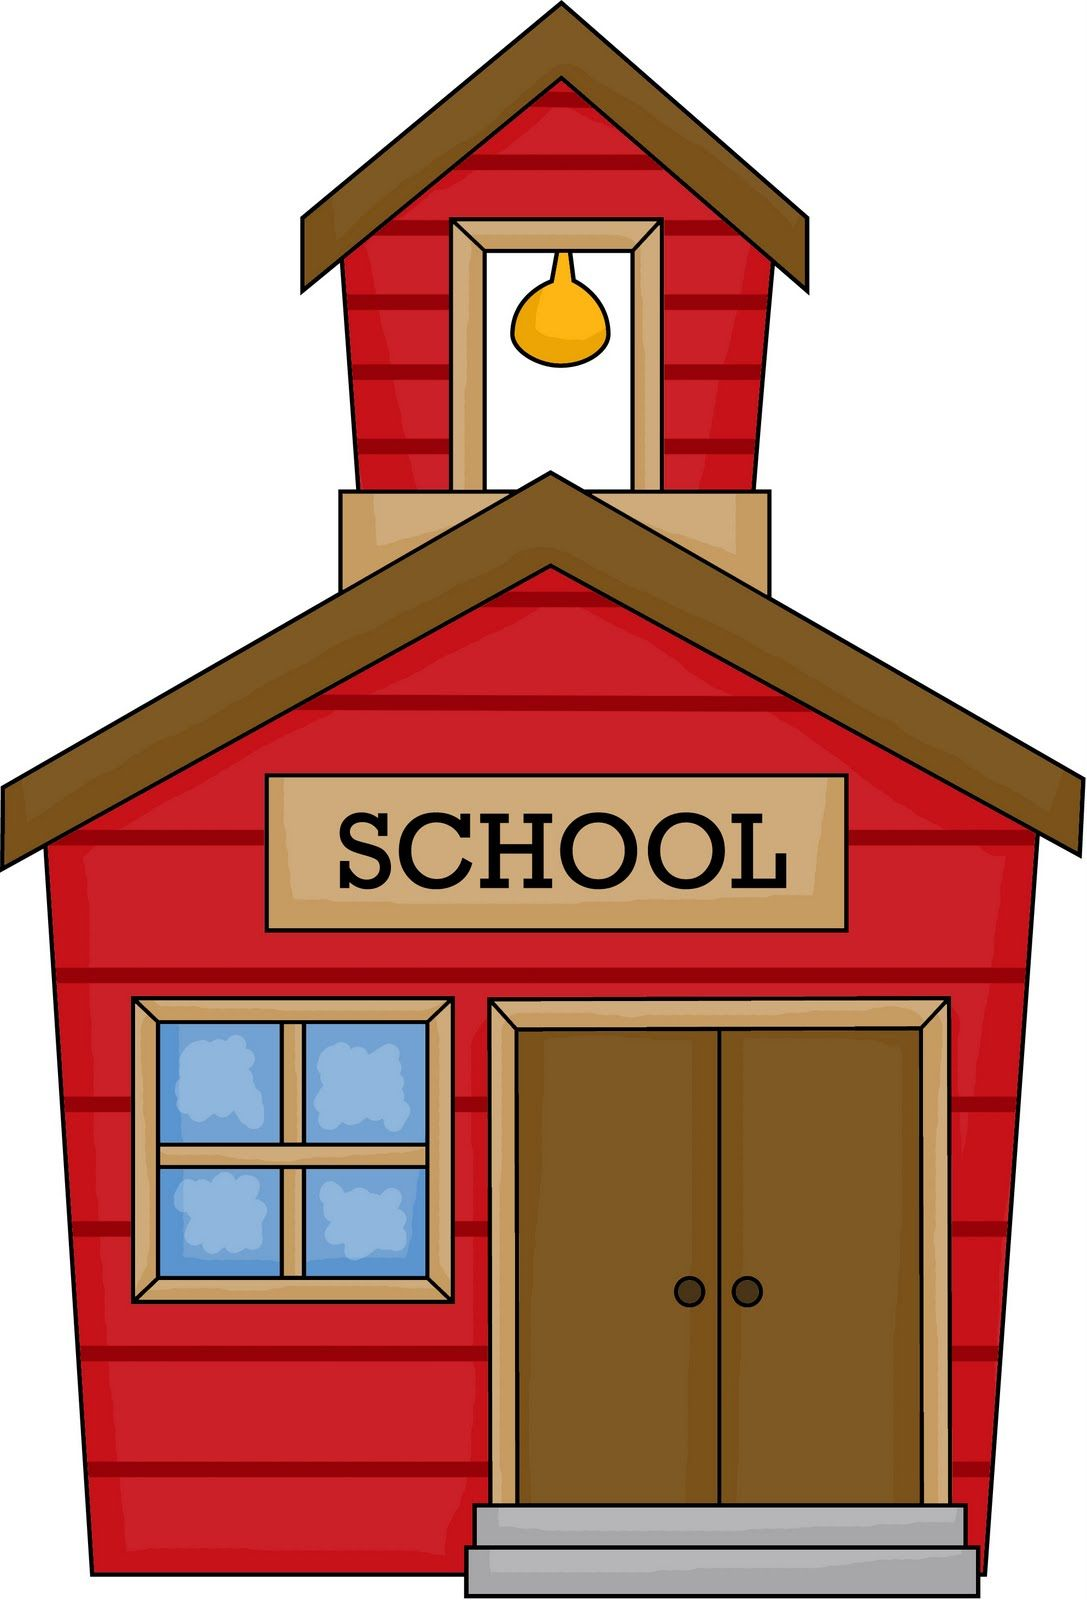 Elementary at getdrawings com. School clipart graphic freeuse